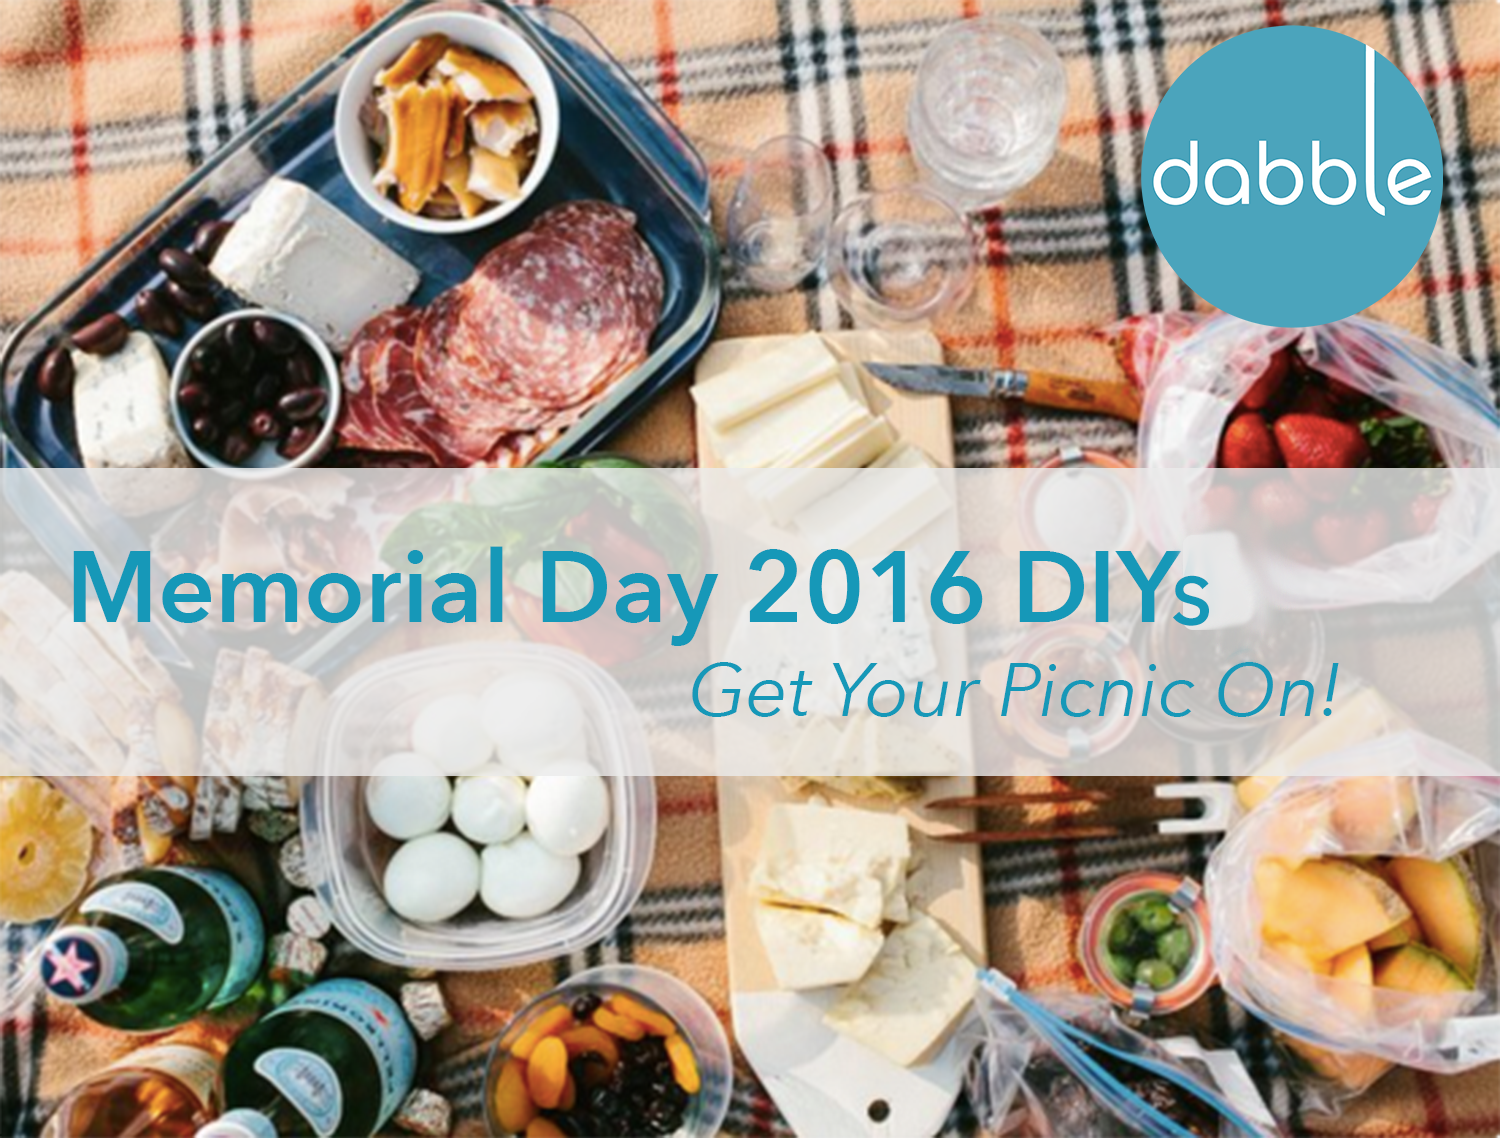 Best Picnic DIYs for Memorial Day 2016